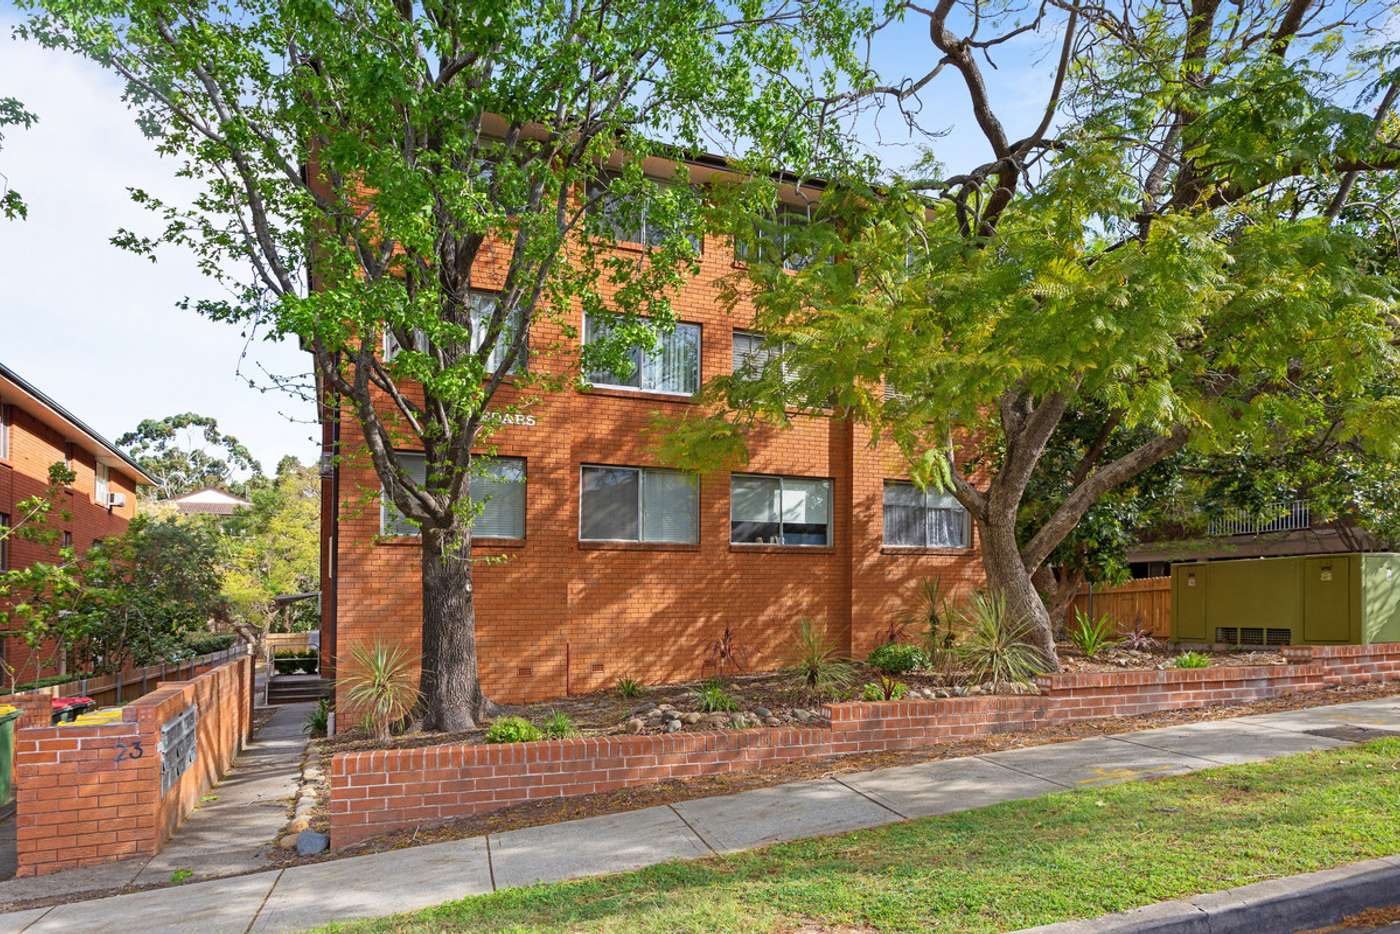 Main view of Homely apartment listing, 2/23 William Street, North Parramatta NSW 2151